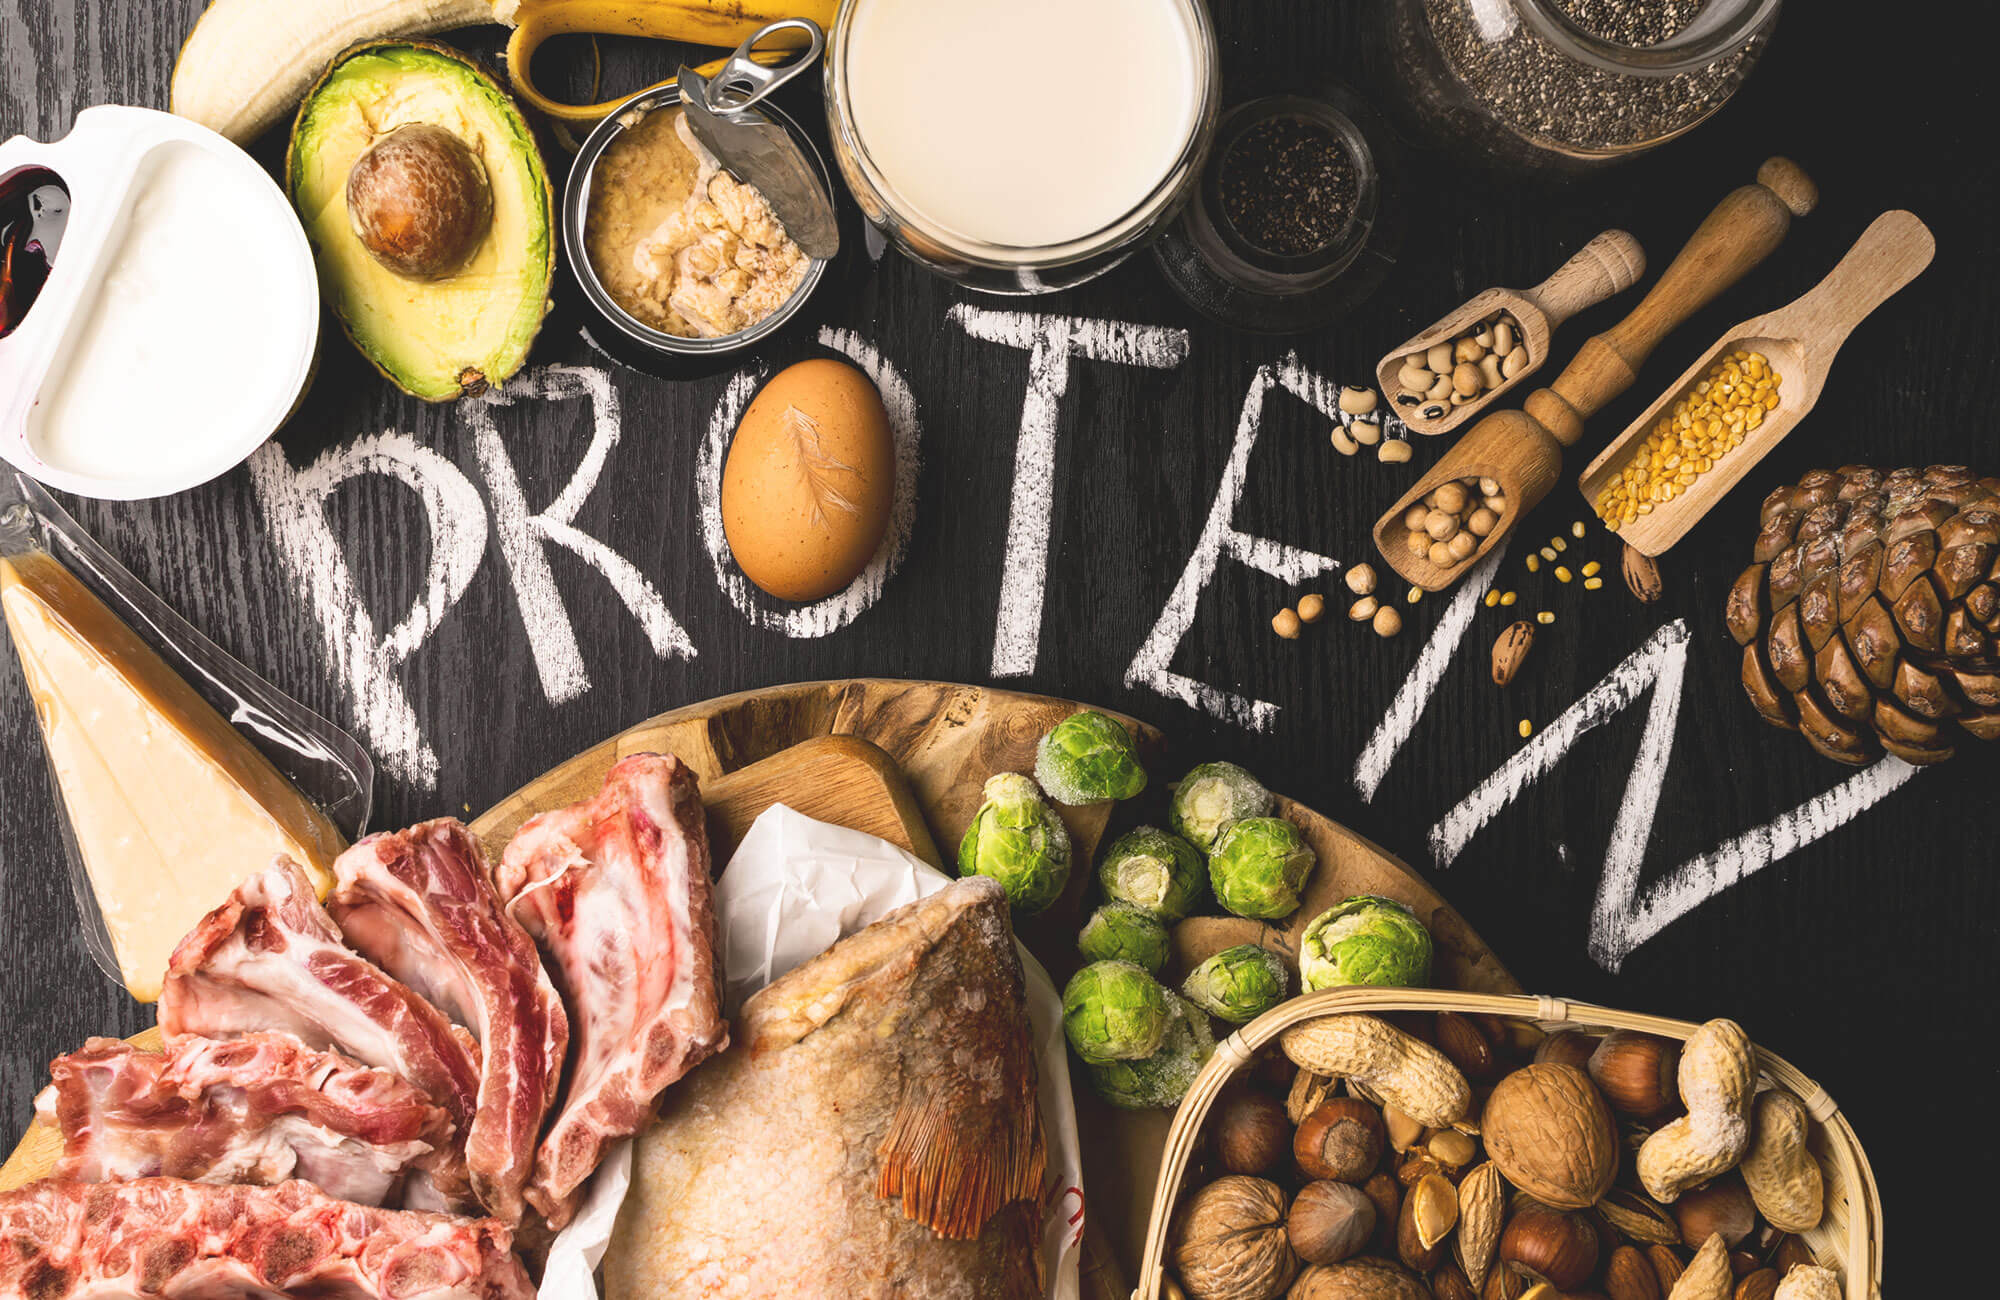 Protein - What you need to know that will help maximise your physique and fat loss